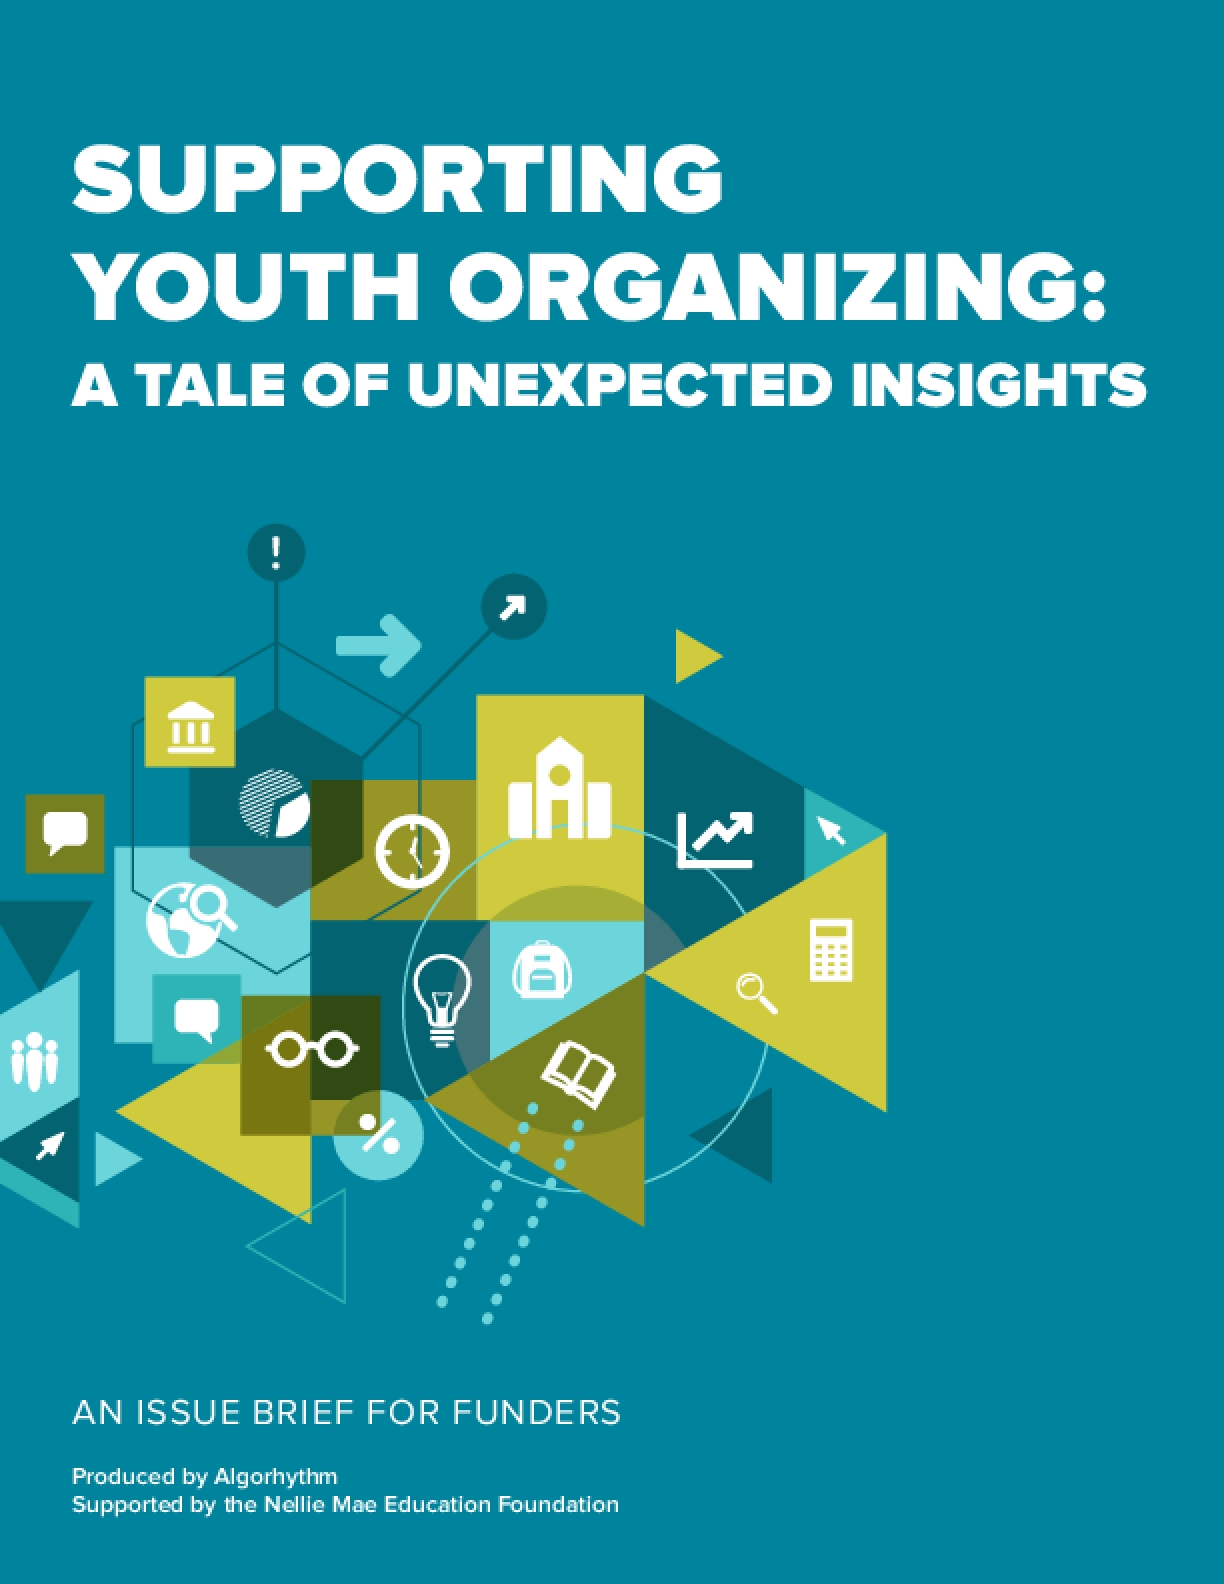 Supporting Youth Organizing: A Tale of Unexpected Insights